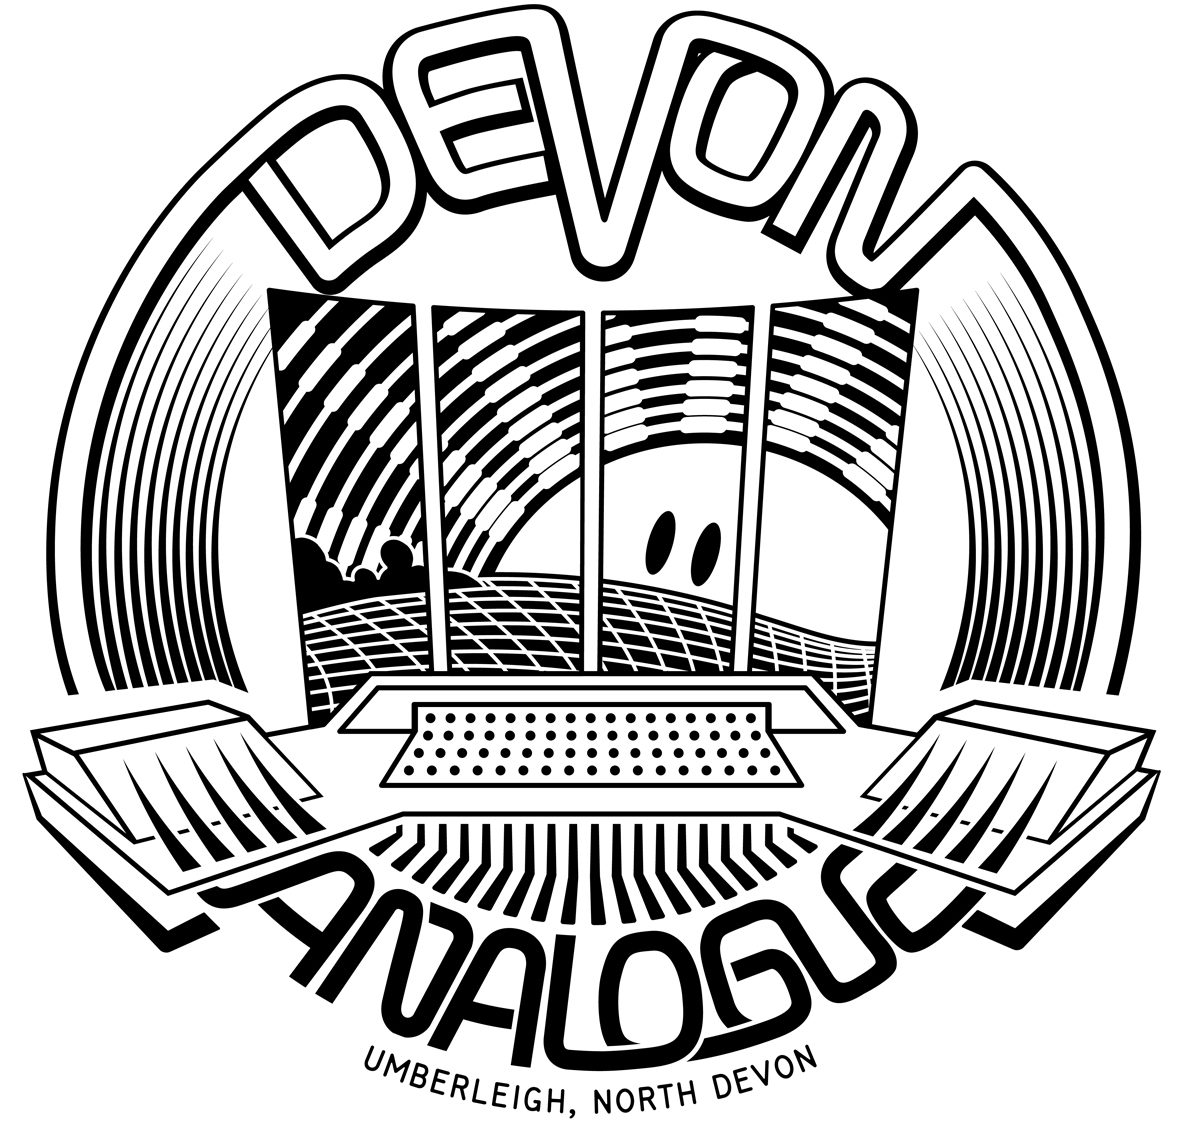 Devon Analogue Recording Studio